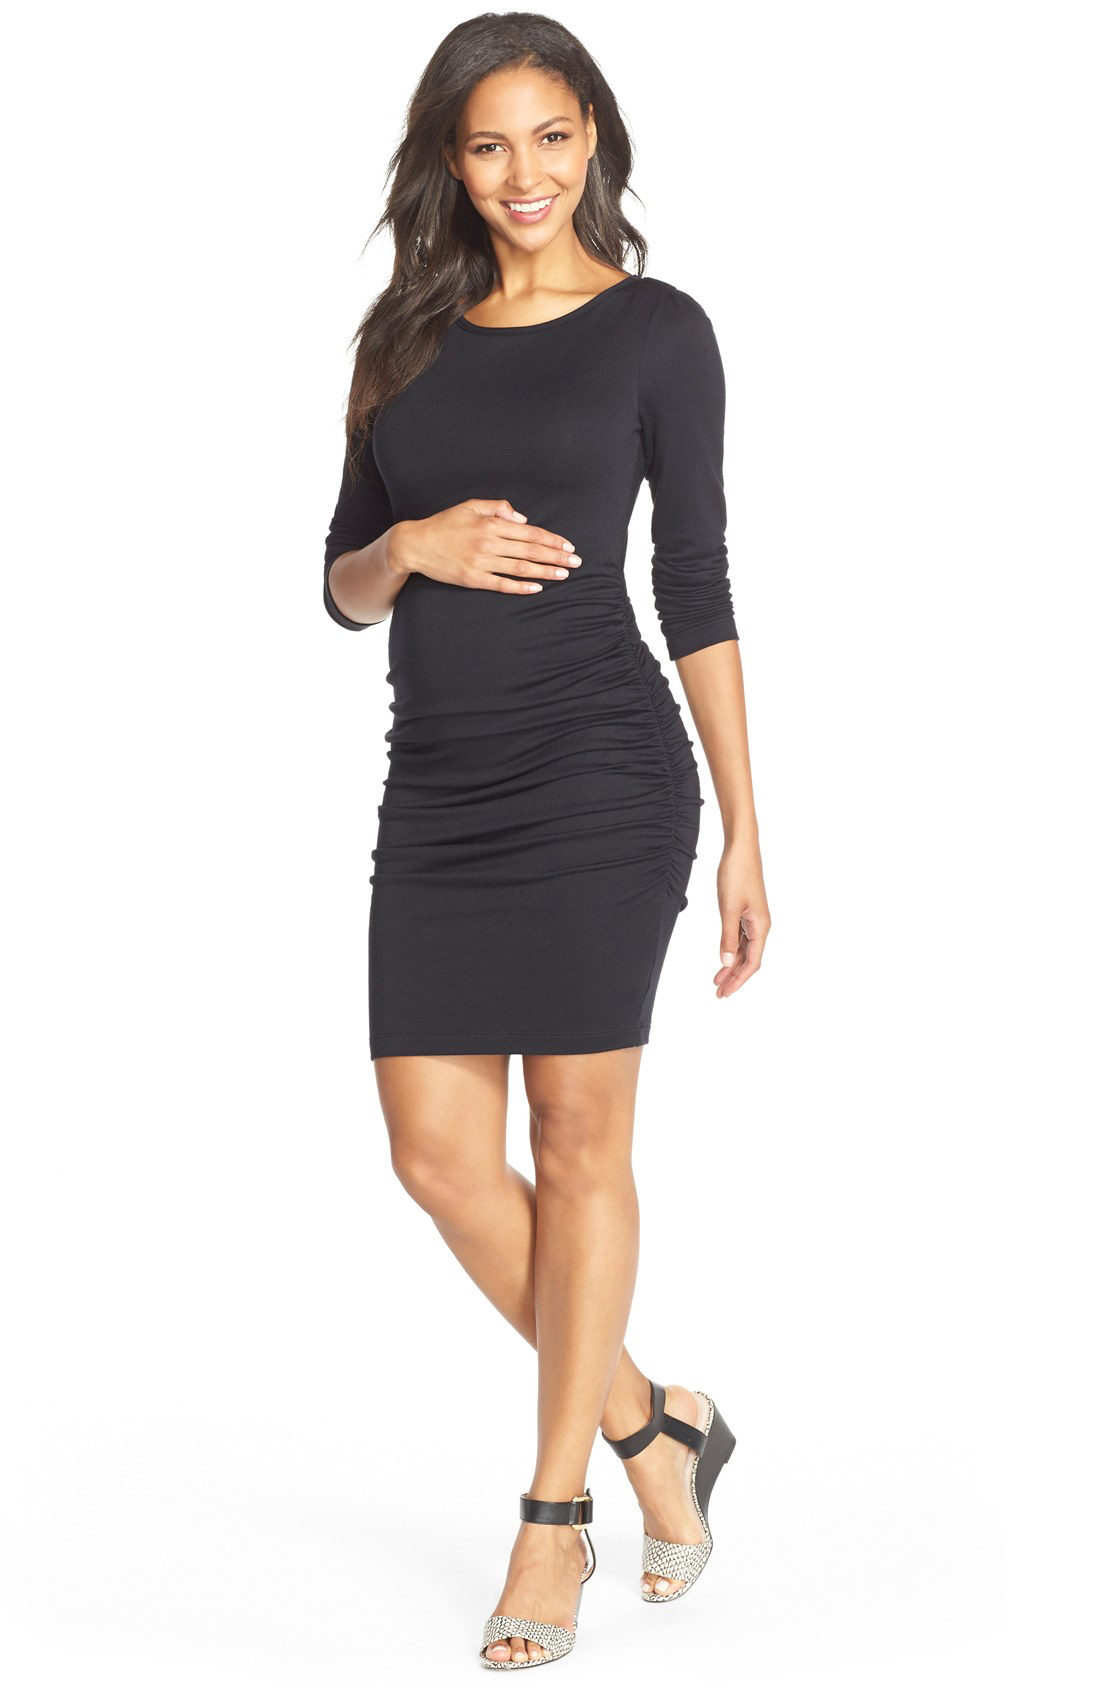 Maternity Little Black Dresses - Project Nursery